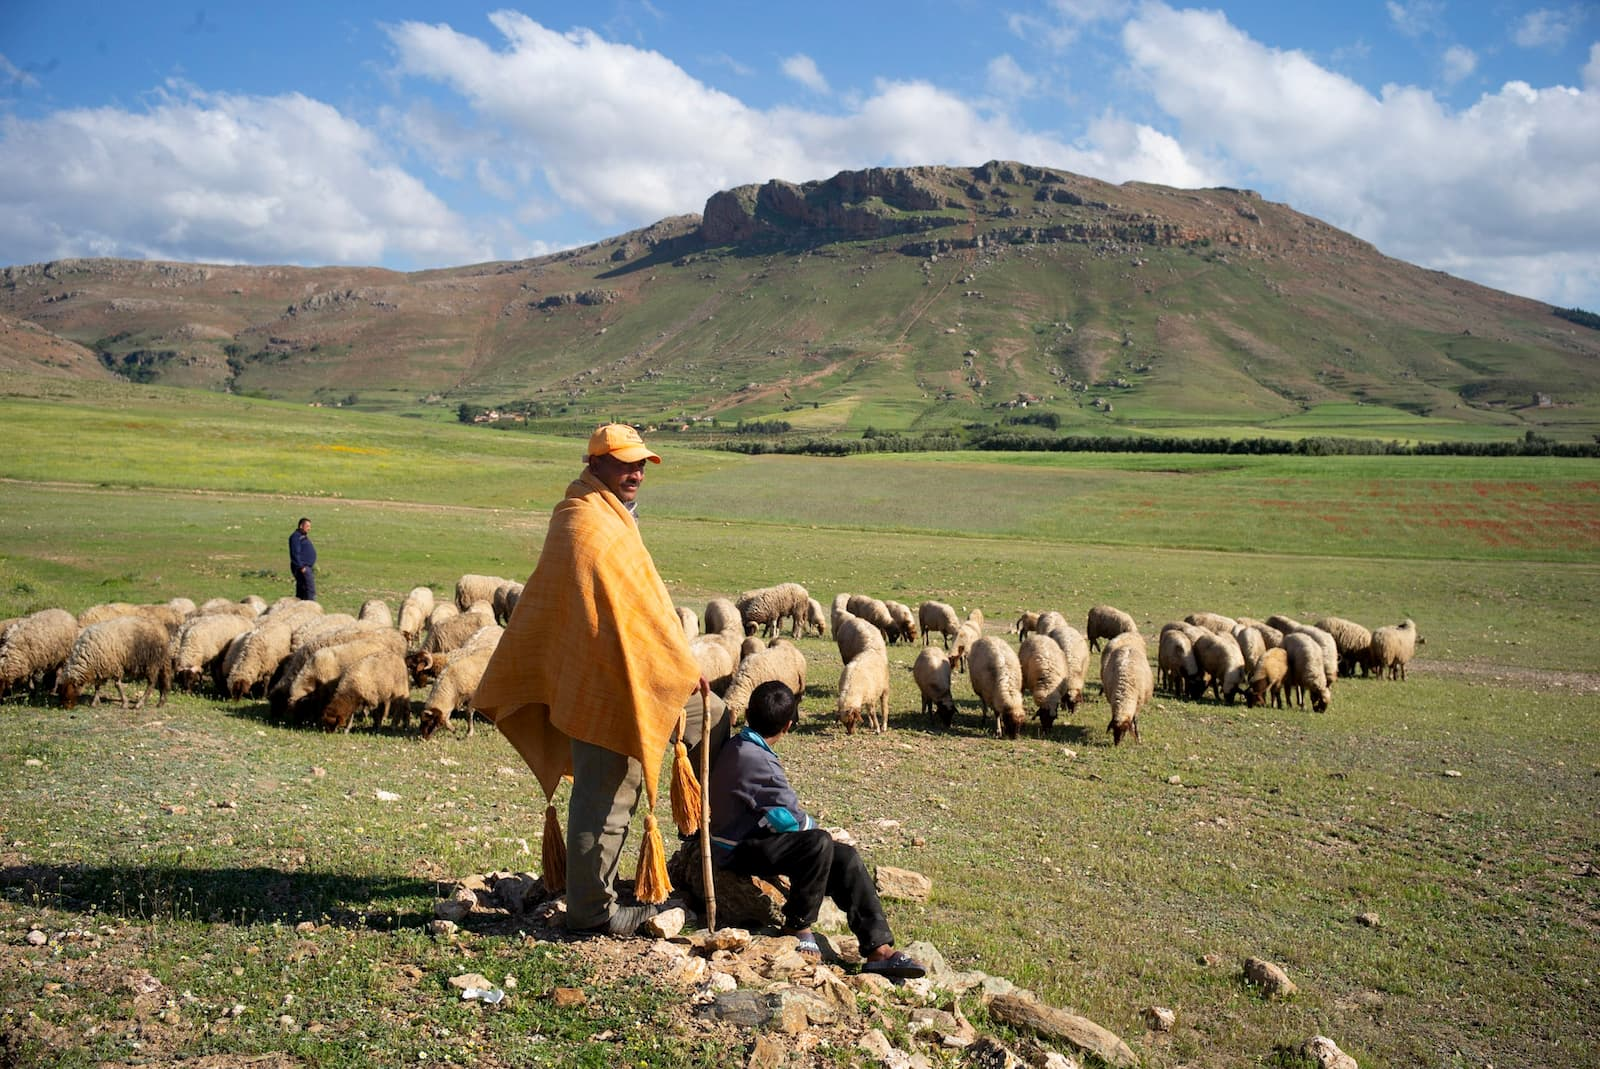 /img/pages/bamboo-textile/morocco/Shepherd_family_1.jpg